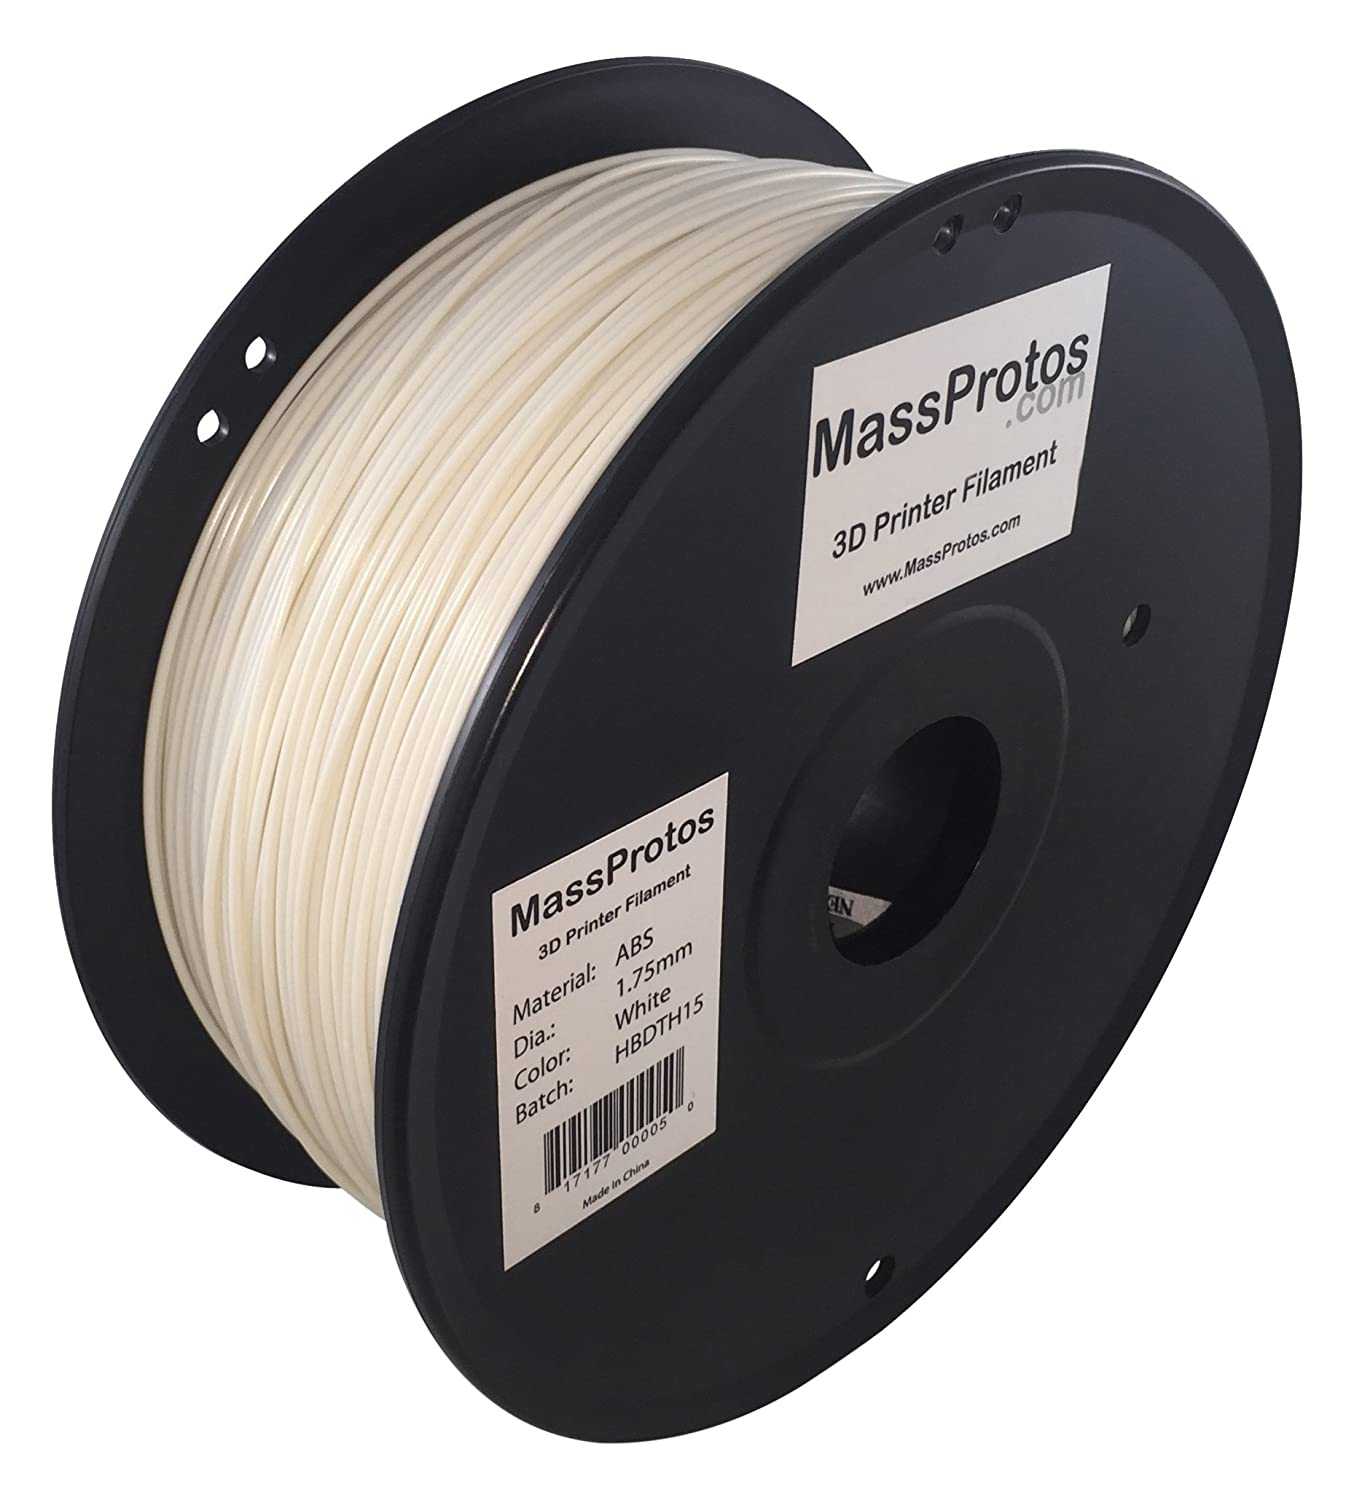 Amazon.com: MassProtos ABS-175-W 3D Printer Filament, ABS, 1.75 mm,, +/- 0.05 mm, White: Industrial & Scientific